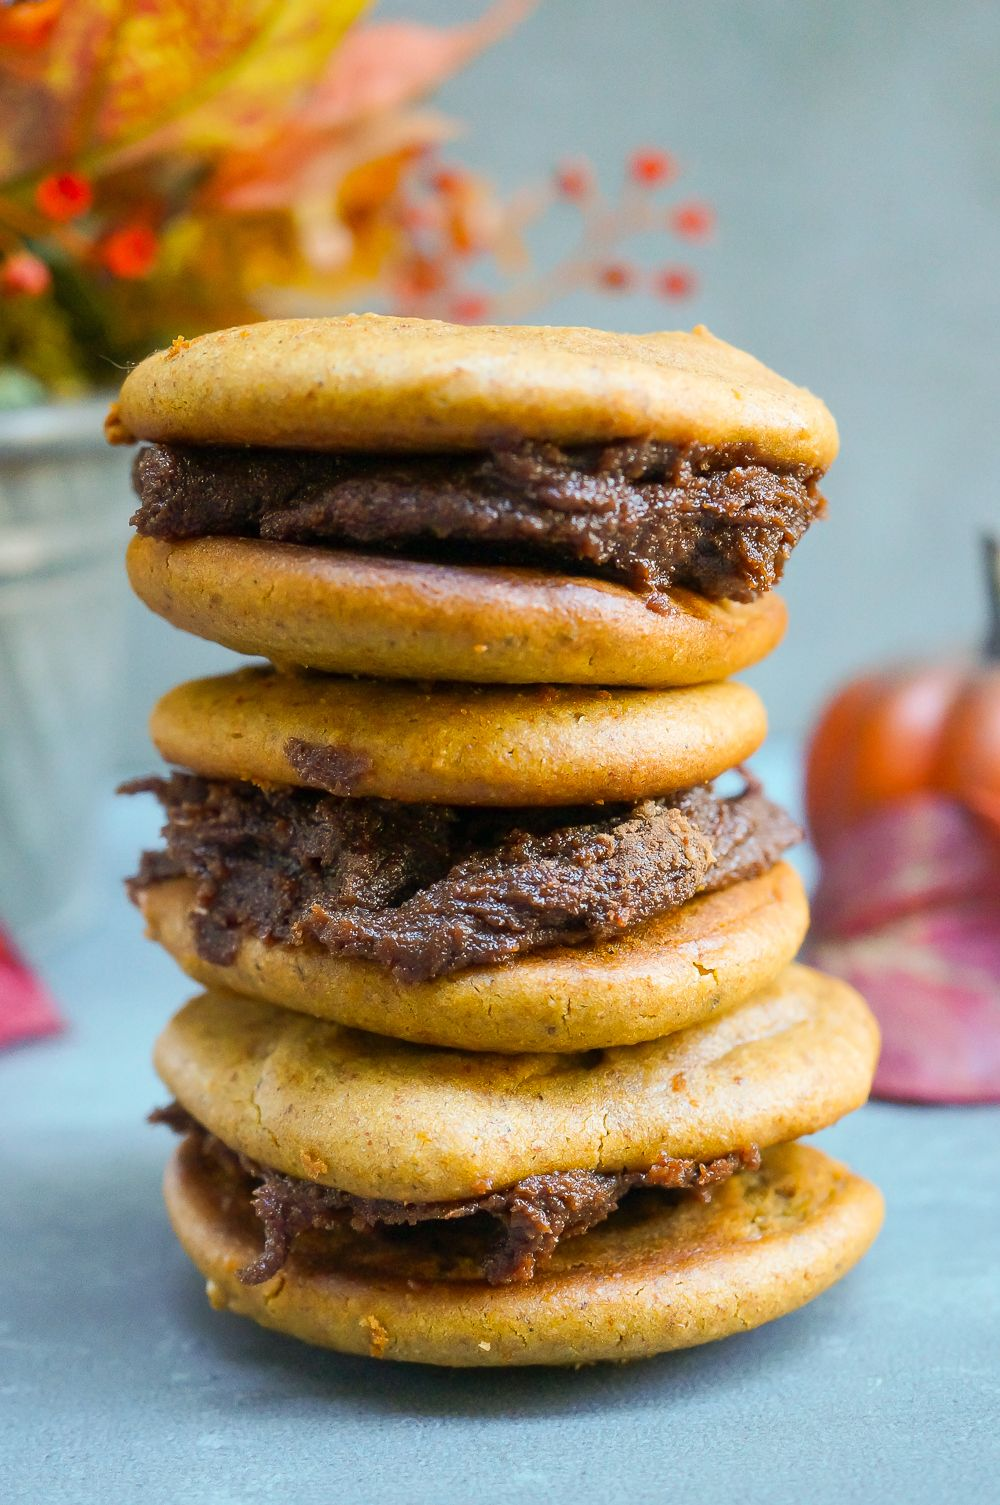 Pumpkin Pie Cookie Sandwiches with Chocolate Cinnamon Filling (Gluten Free, Vegan, Paleo, Refined Sugar Free) | Sprouted Routes